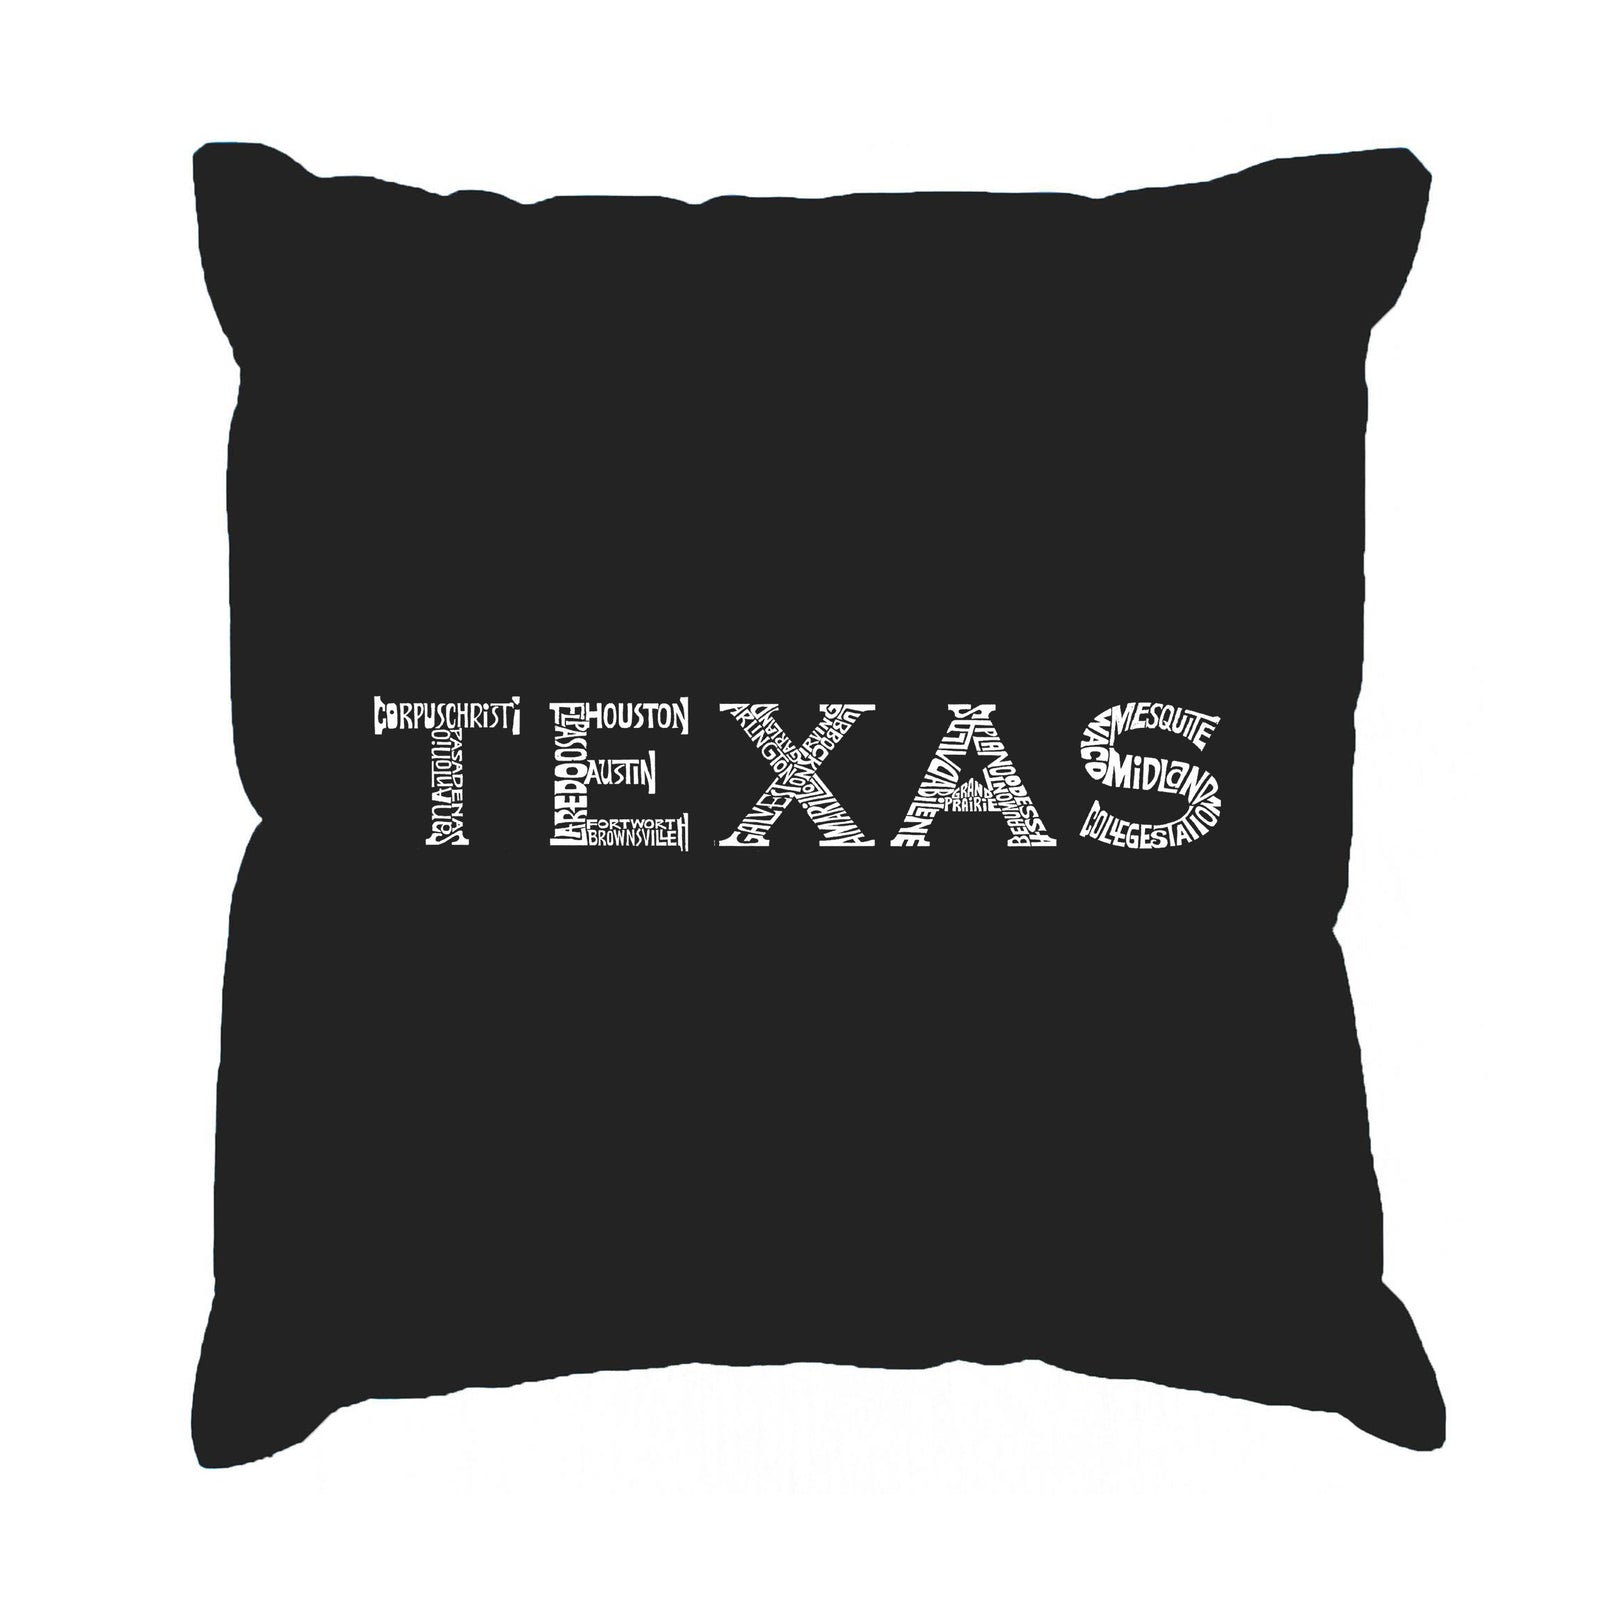 Throw Pillow Cover - THE GREAT CITIES OF TEXAS